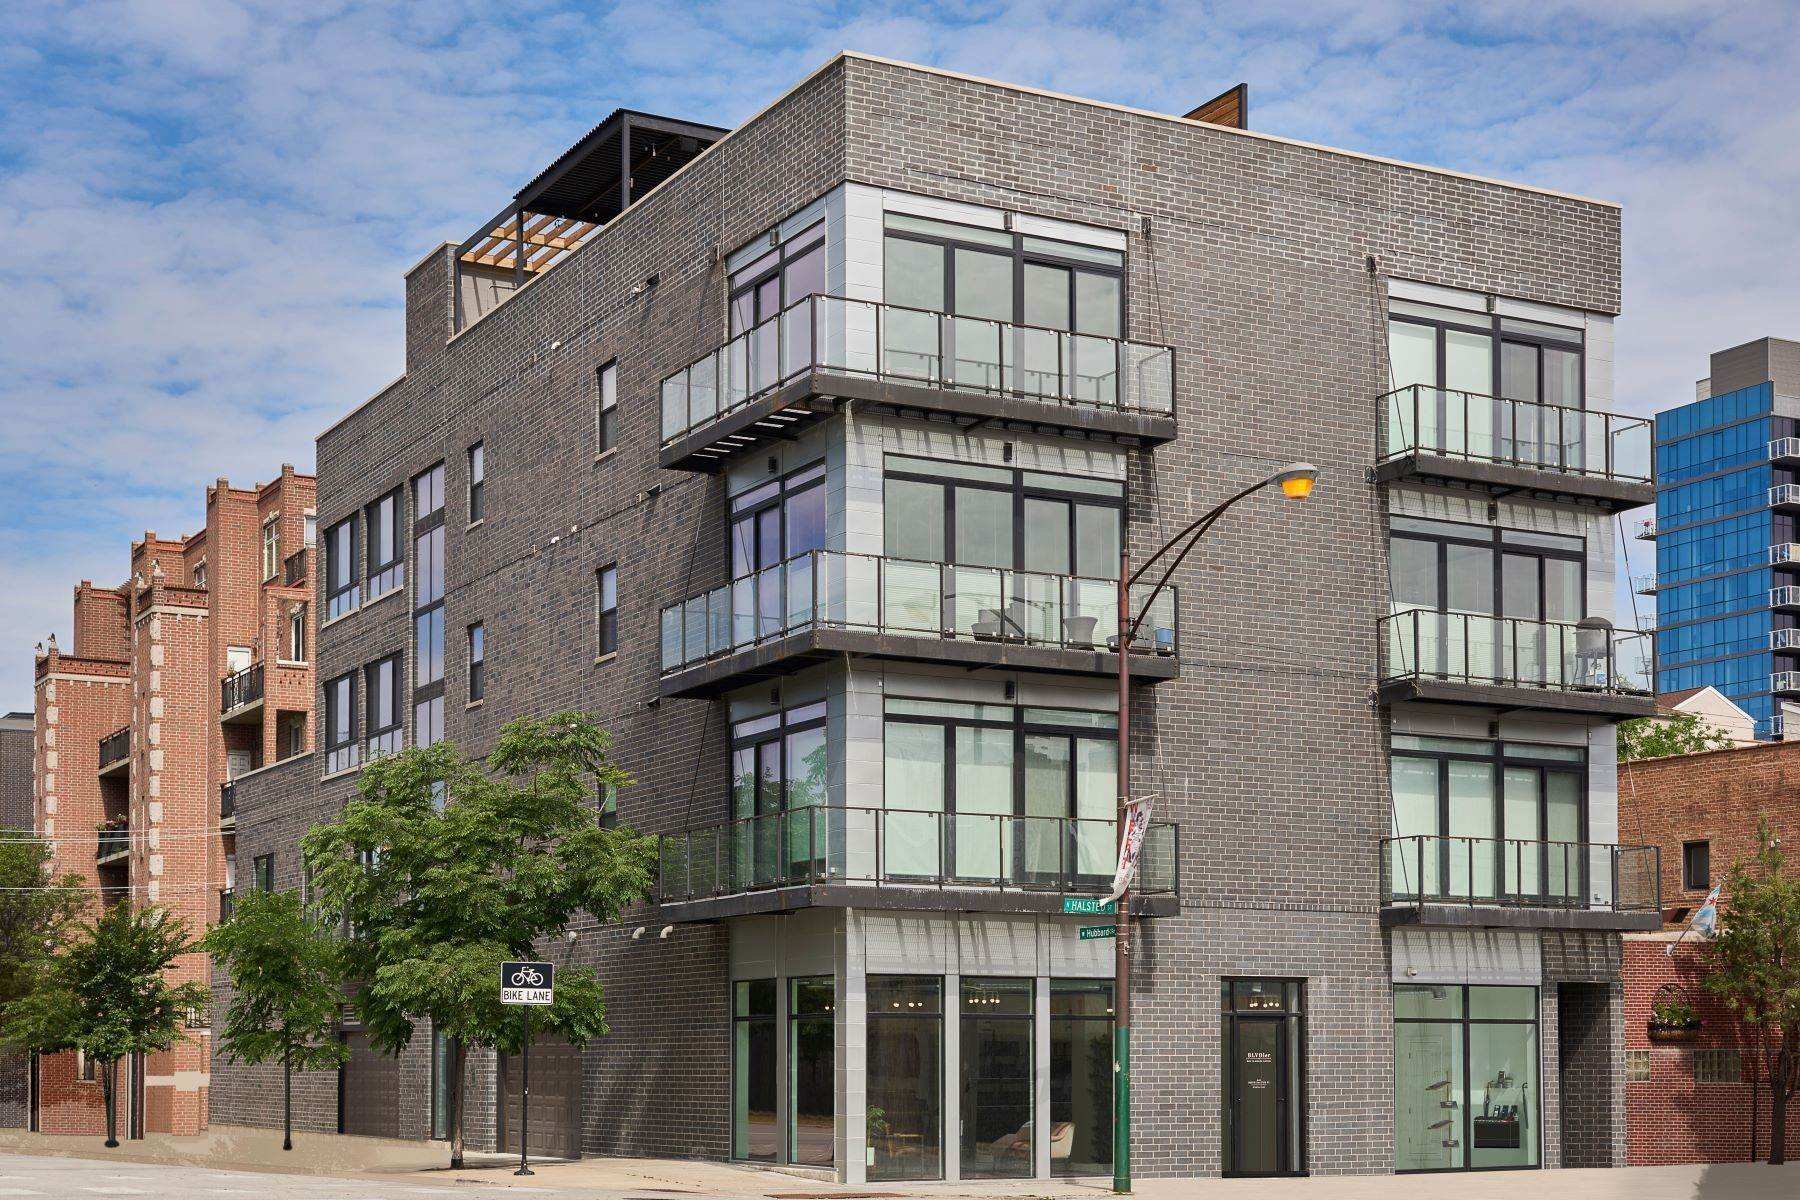 Condominiums for Sale at Incredible Fulton Market Home 440 N Halsted Street, Unit 3A Chicago, Illinois 60642 United States